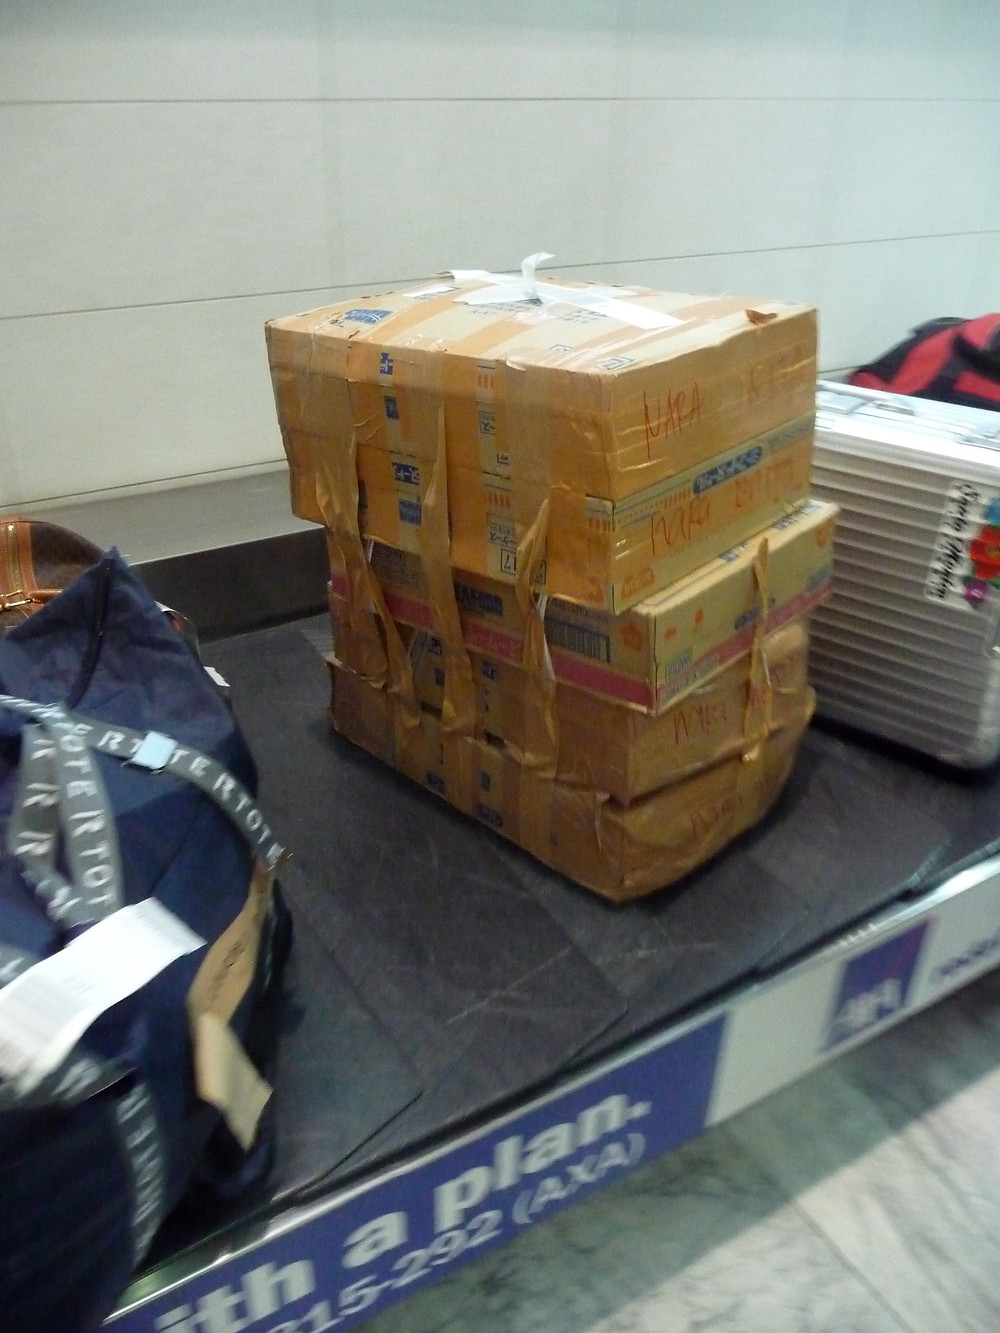 Battered box on baggage carousel